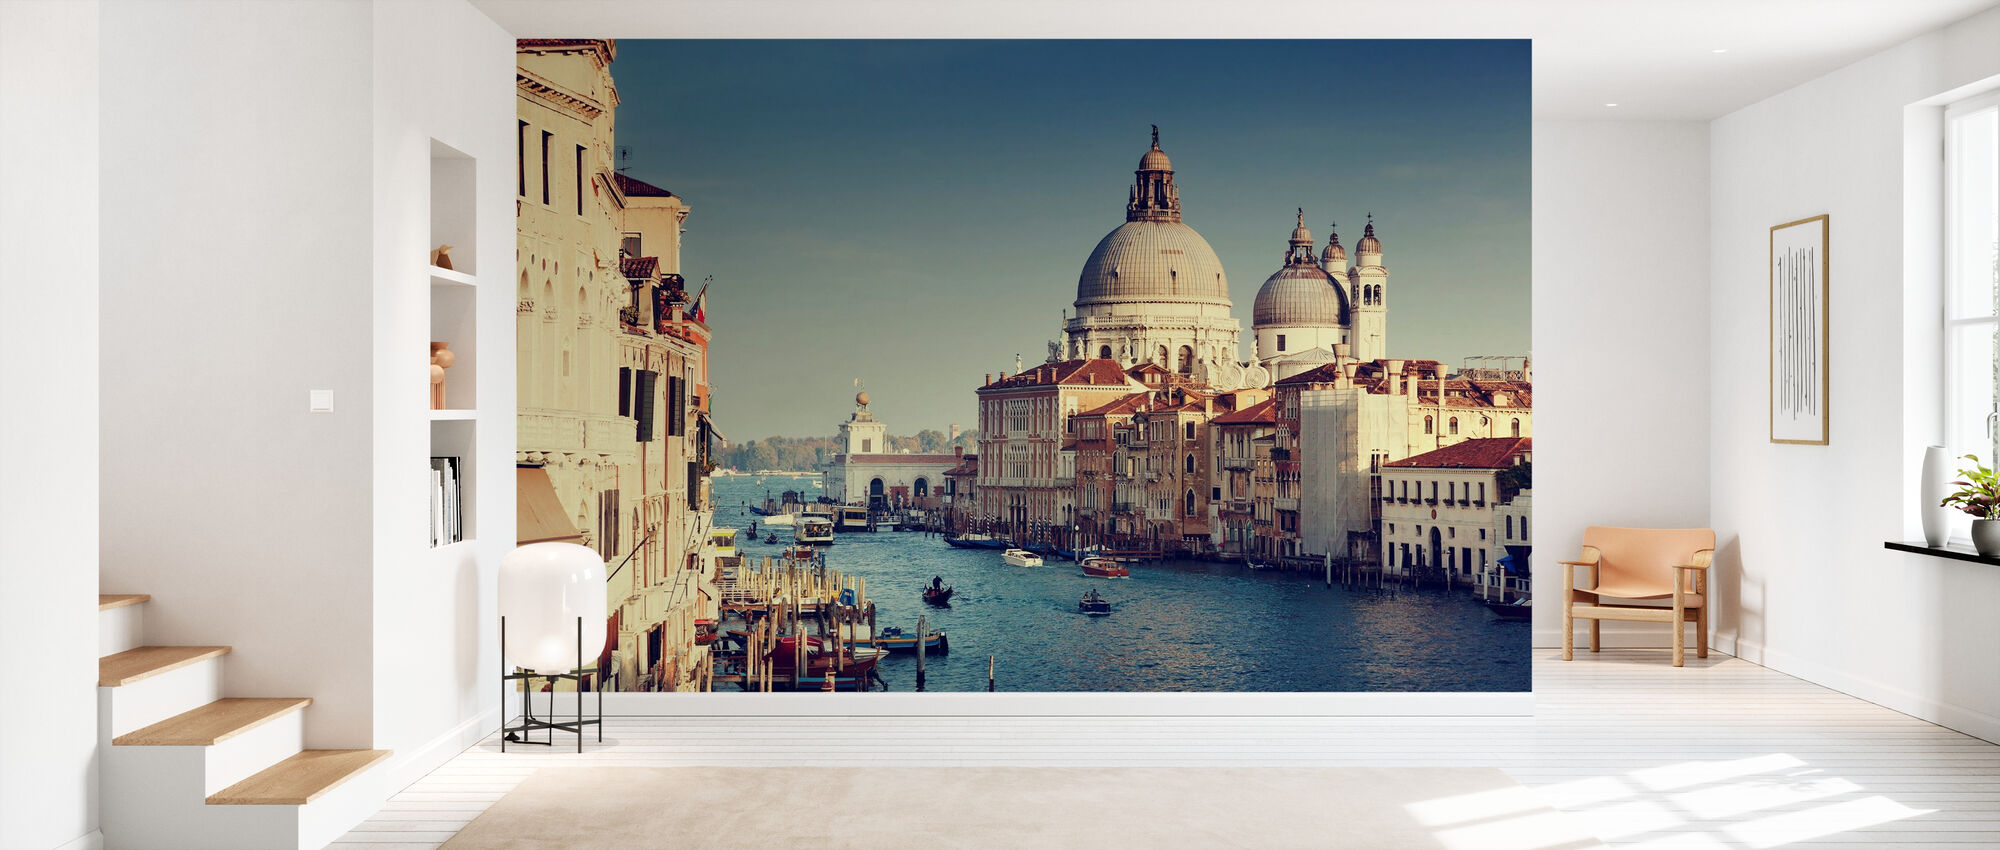 Grand Canal in Venice - Wallpaper - Hallway